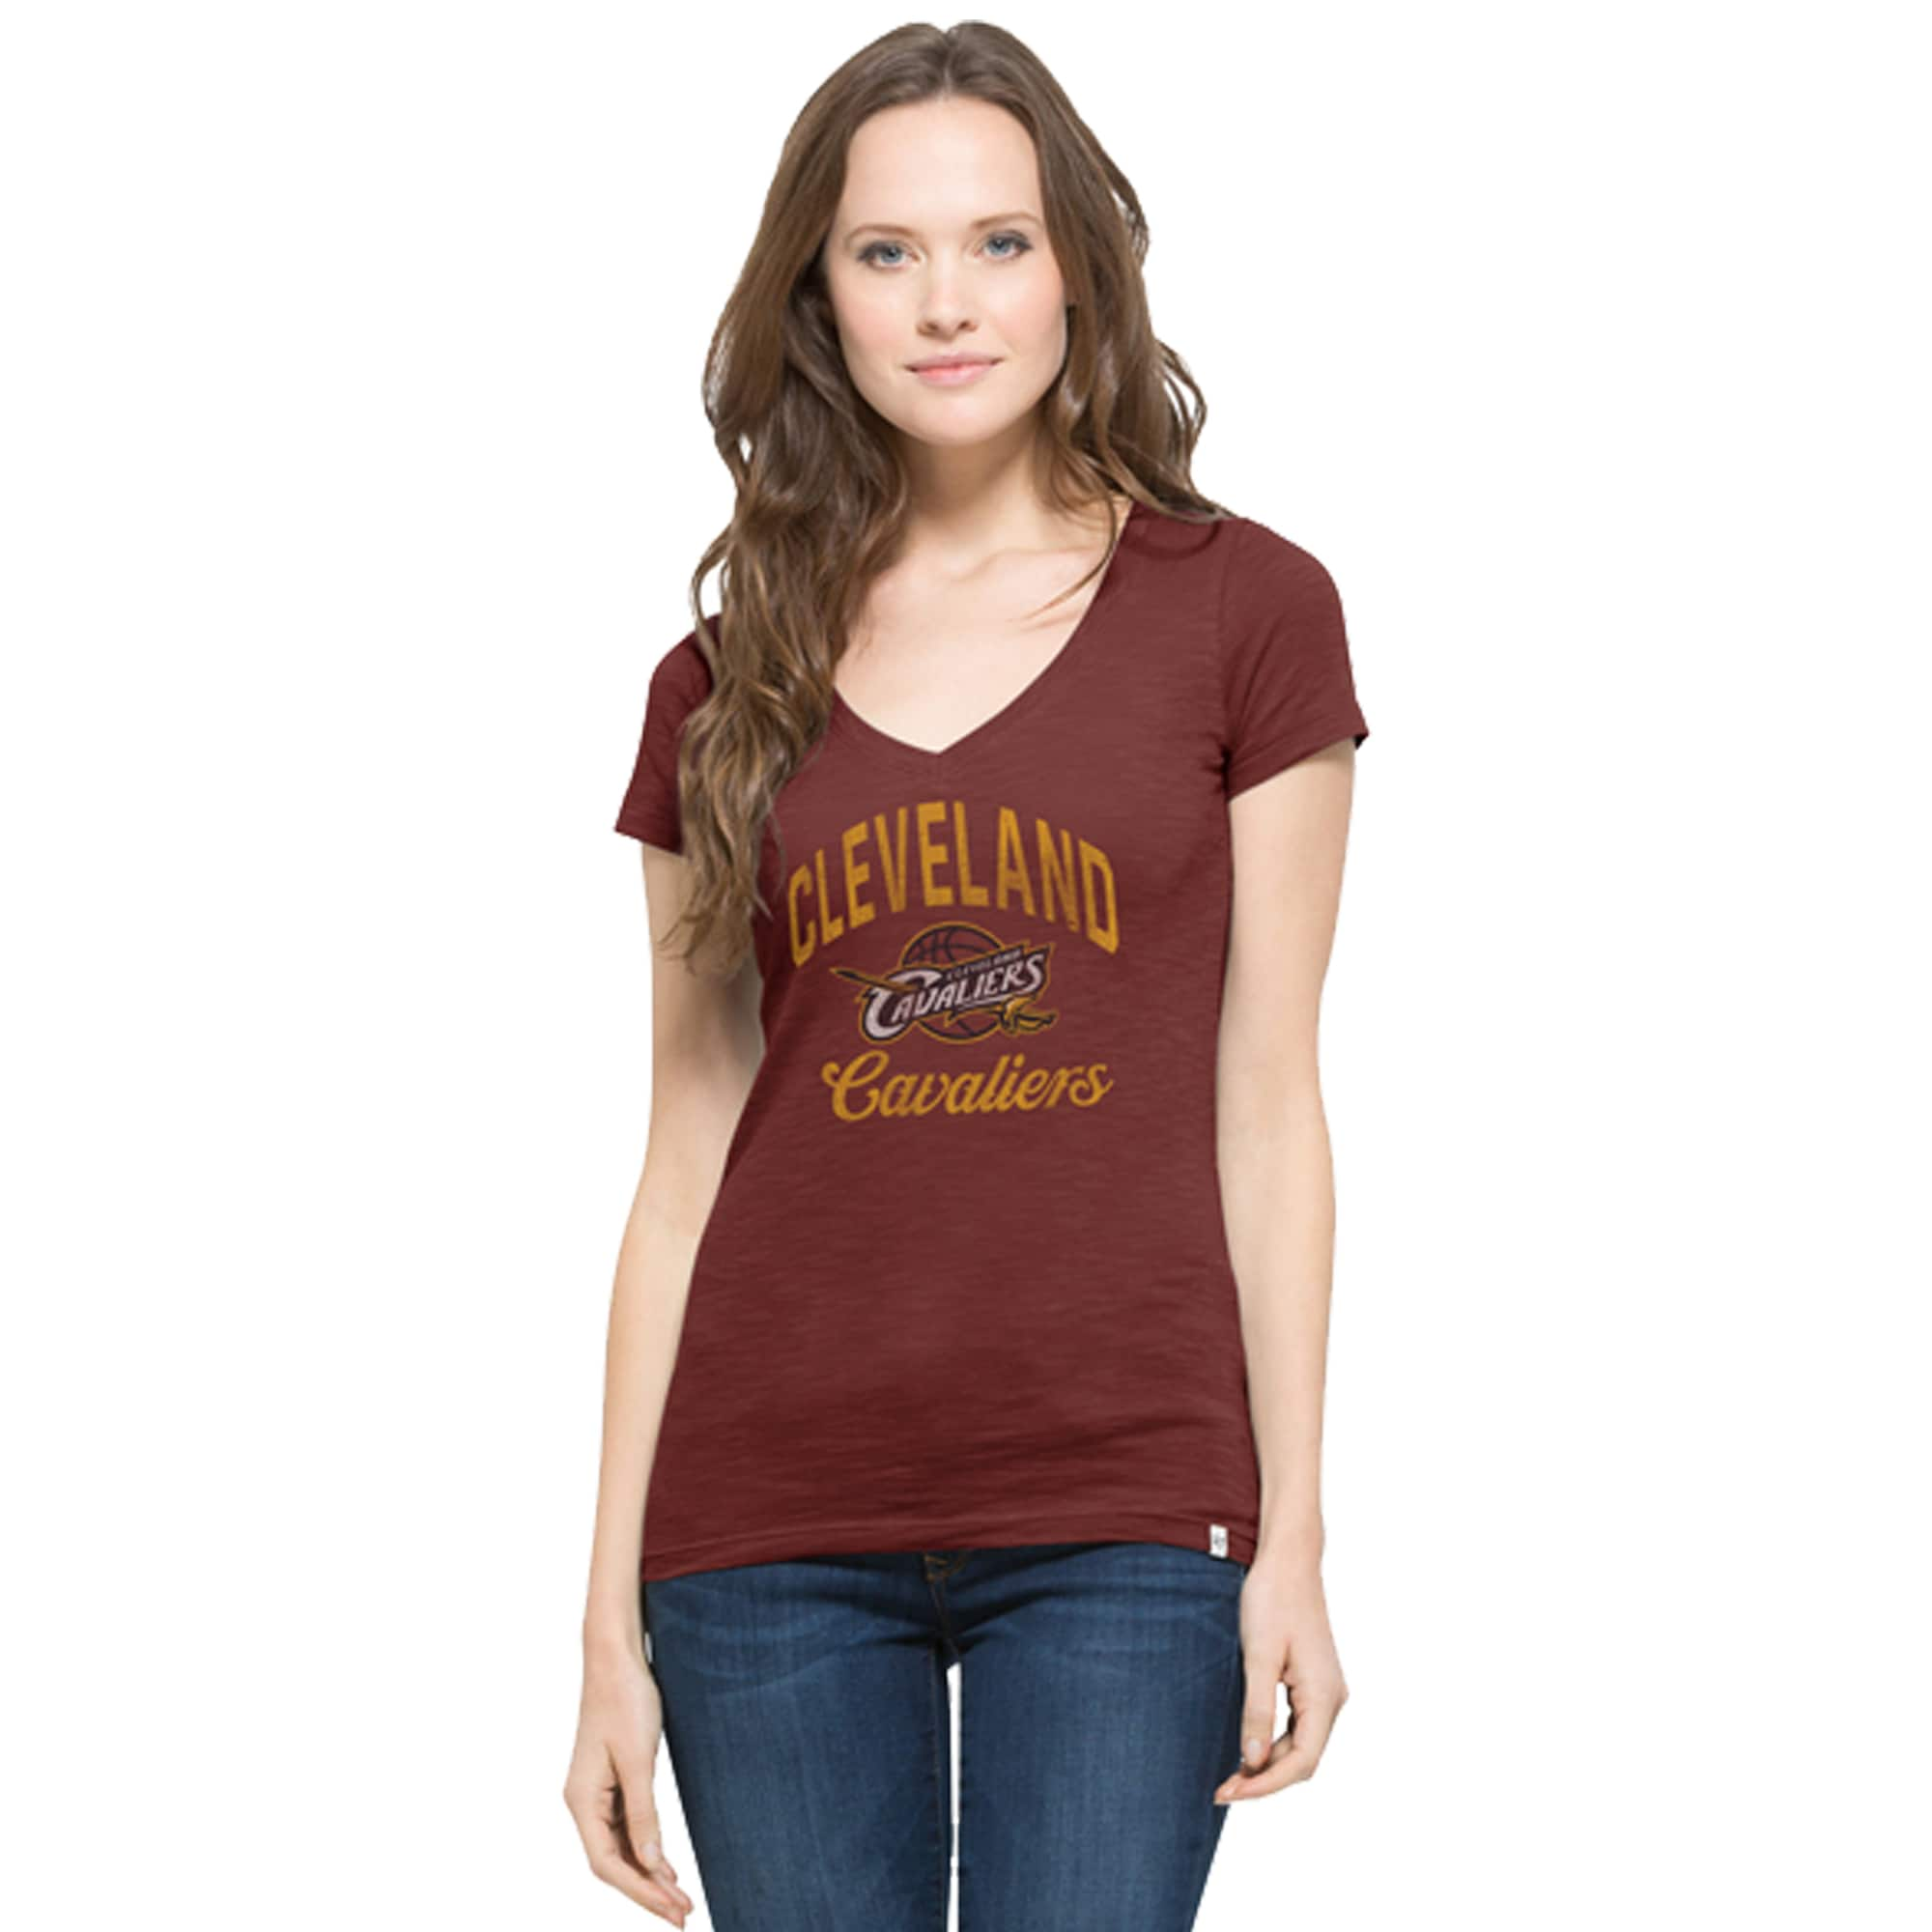 Cleveland Cavaliers '47 Women's Current Day Primary Logo Scrum V-Neck T-Shirt - Burgundy